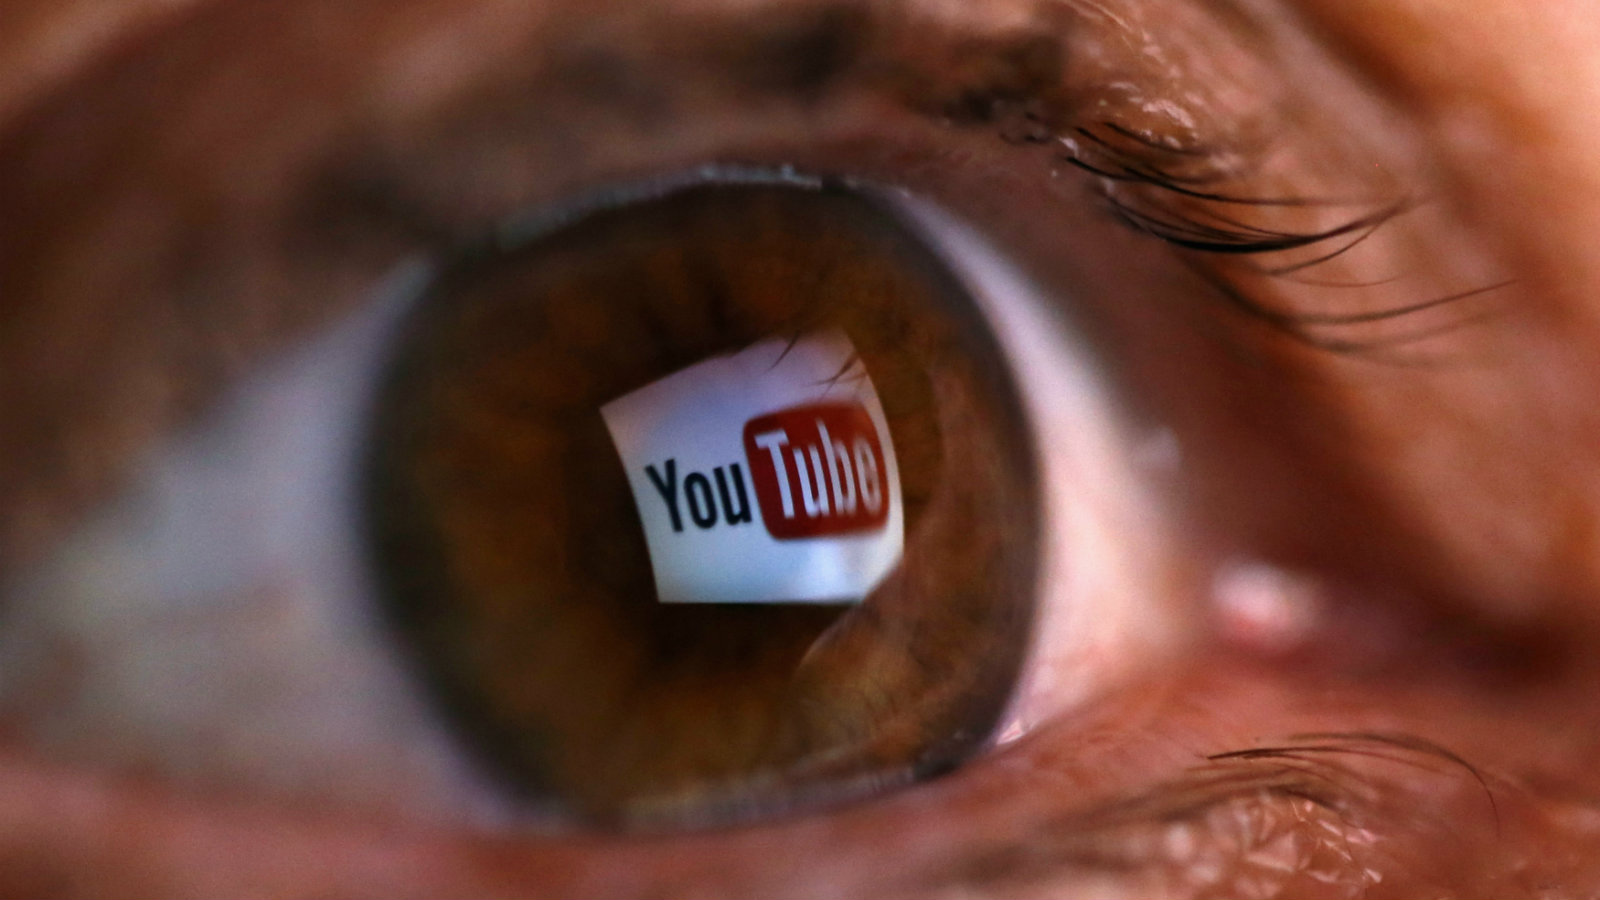 "A picture illustration shows a YouTube logo reflected in a person's eye, in central Bosnian town of Zenica, early June 18, 2014. Google Inc's YouTube said on June 17, 2014 that it plans to launch a paid streaming music service, amid criticism that its existing, free video website might block the music videos of labels that do not agree to its terms. YouTube has partnered with ""hundreds of major and independent"" music labels for the new service, the company said in a statement, confirming long-running rumors that the world's most popular online video website will offer a paid music service. The picture was flipped horizontally."